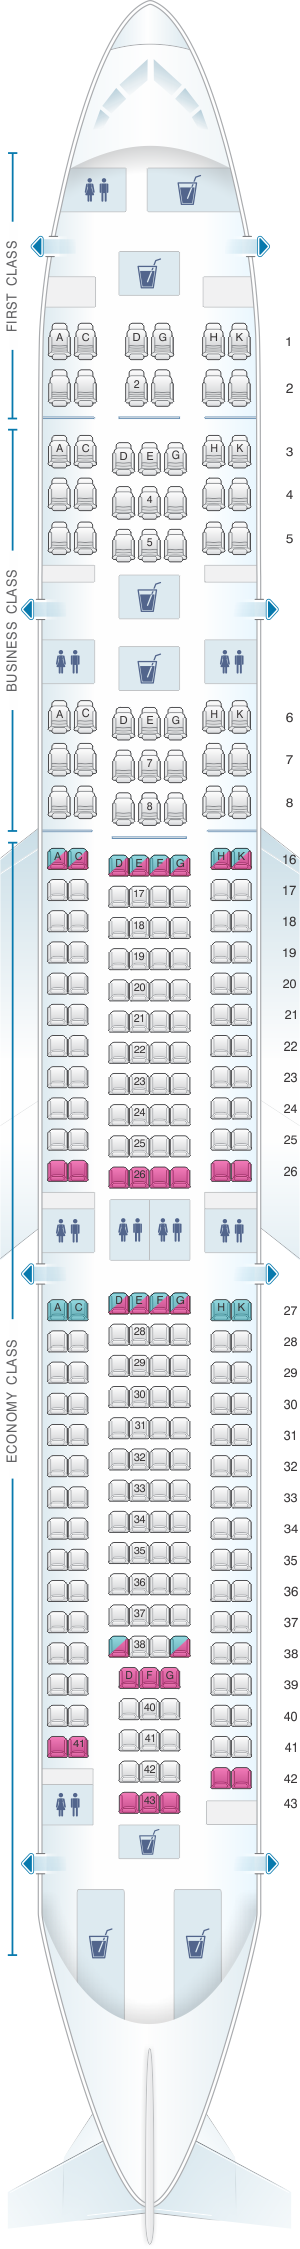 Seat map for Hi Fly Airbus A340 300  TQY/TQZ/JAY/FOX 267pax